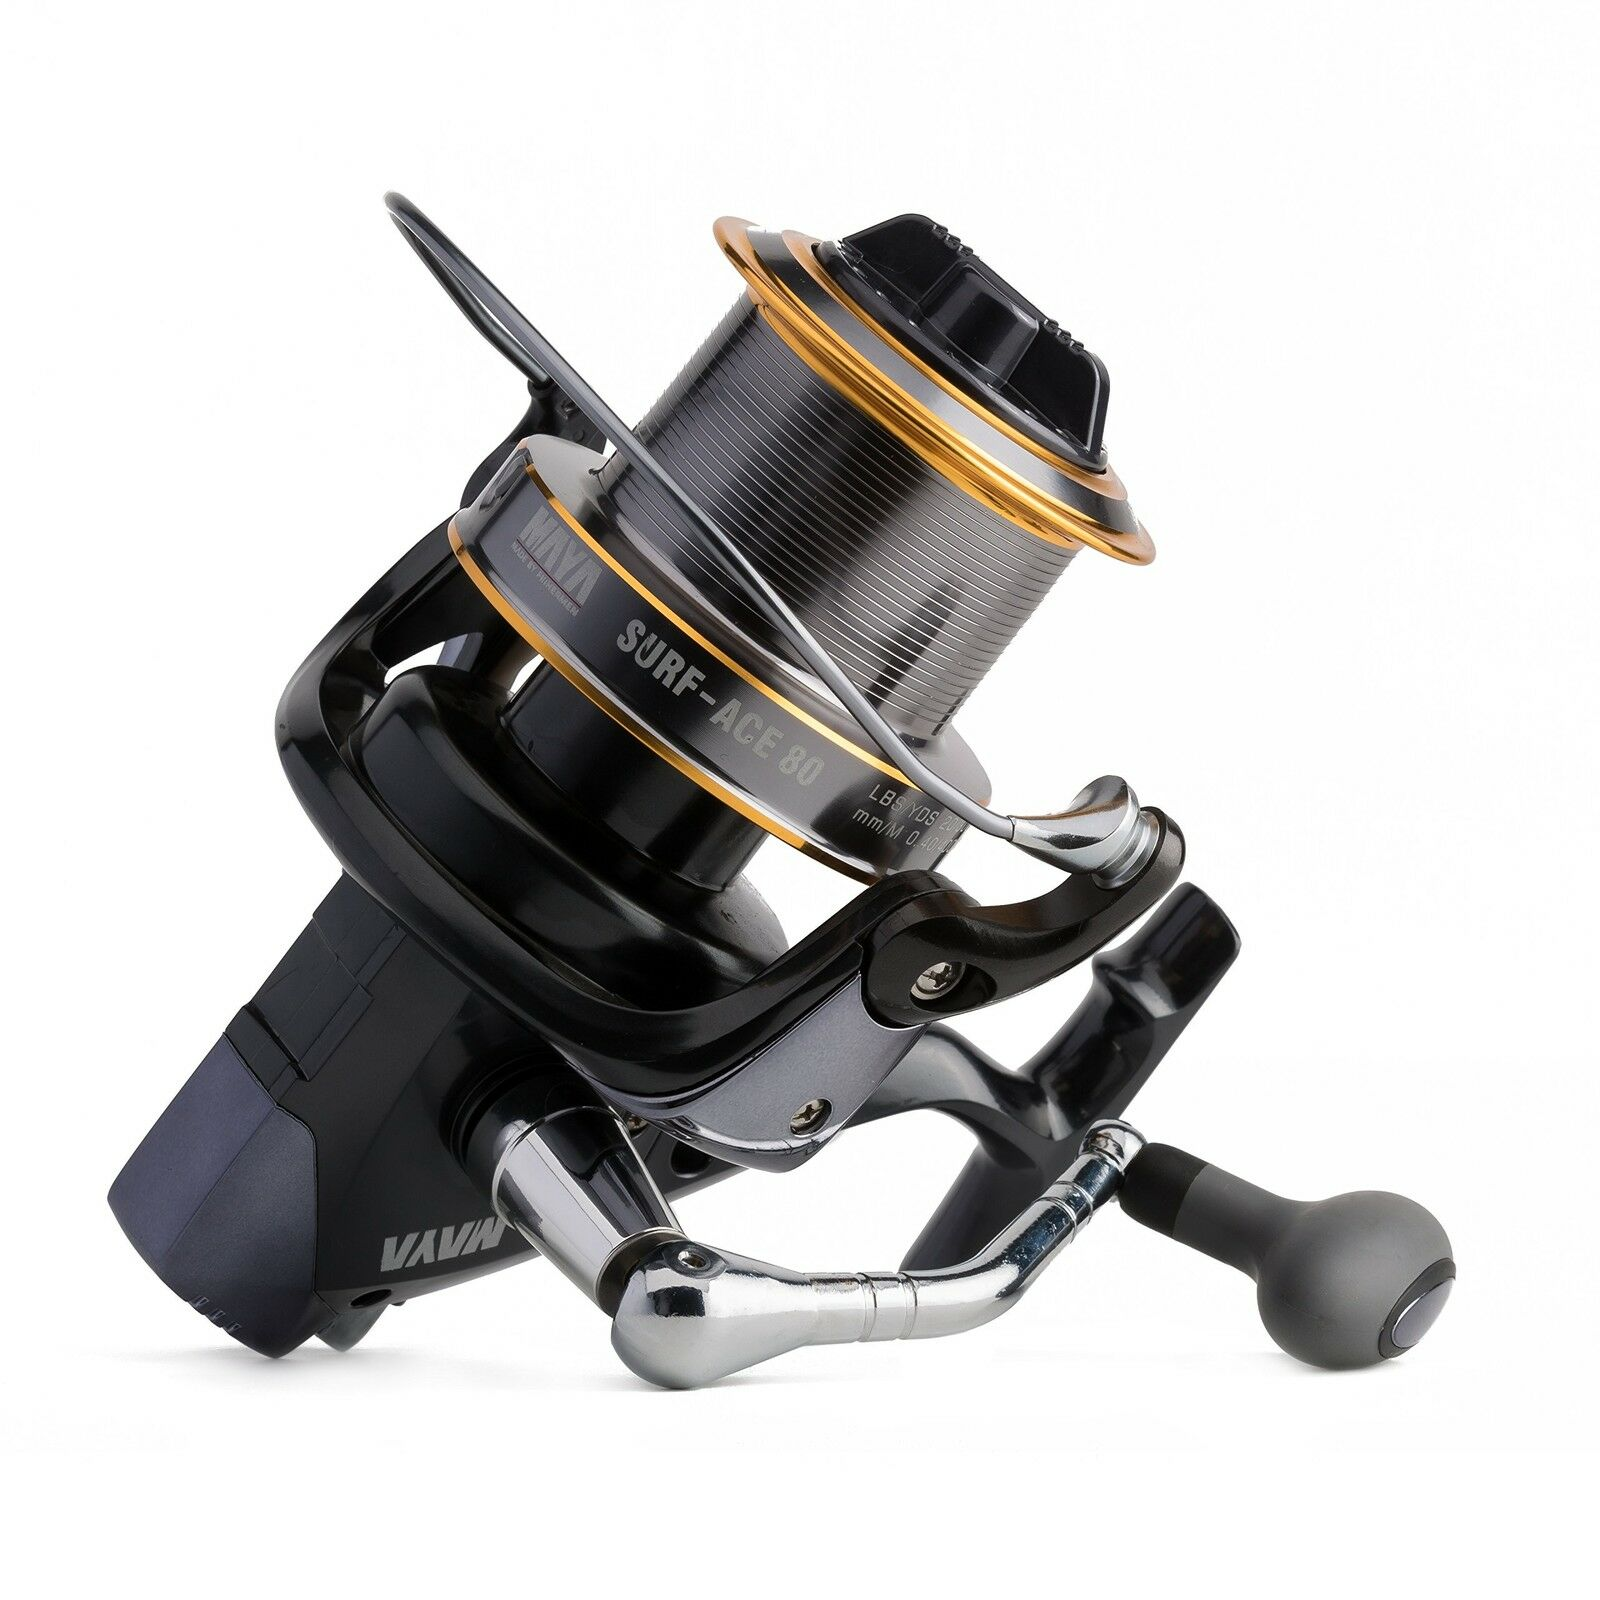 Maya Fishing Surf Ace Casting Shore Aluminum Saltwater Spinning Reel